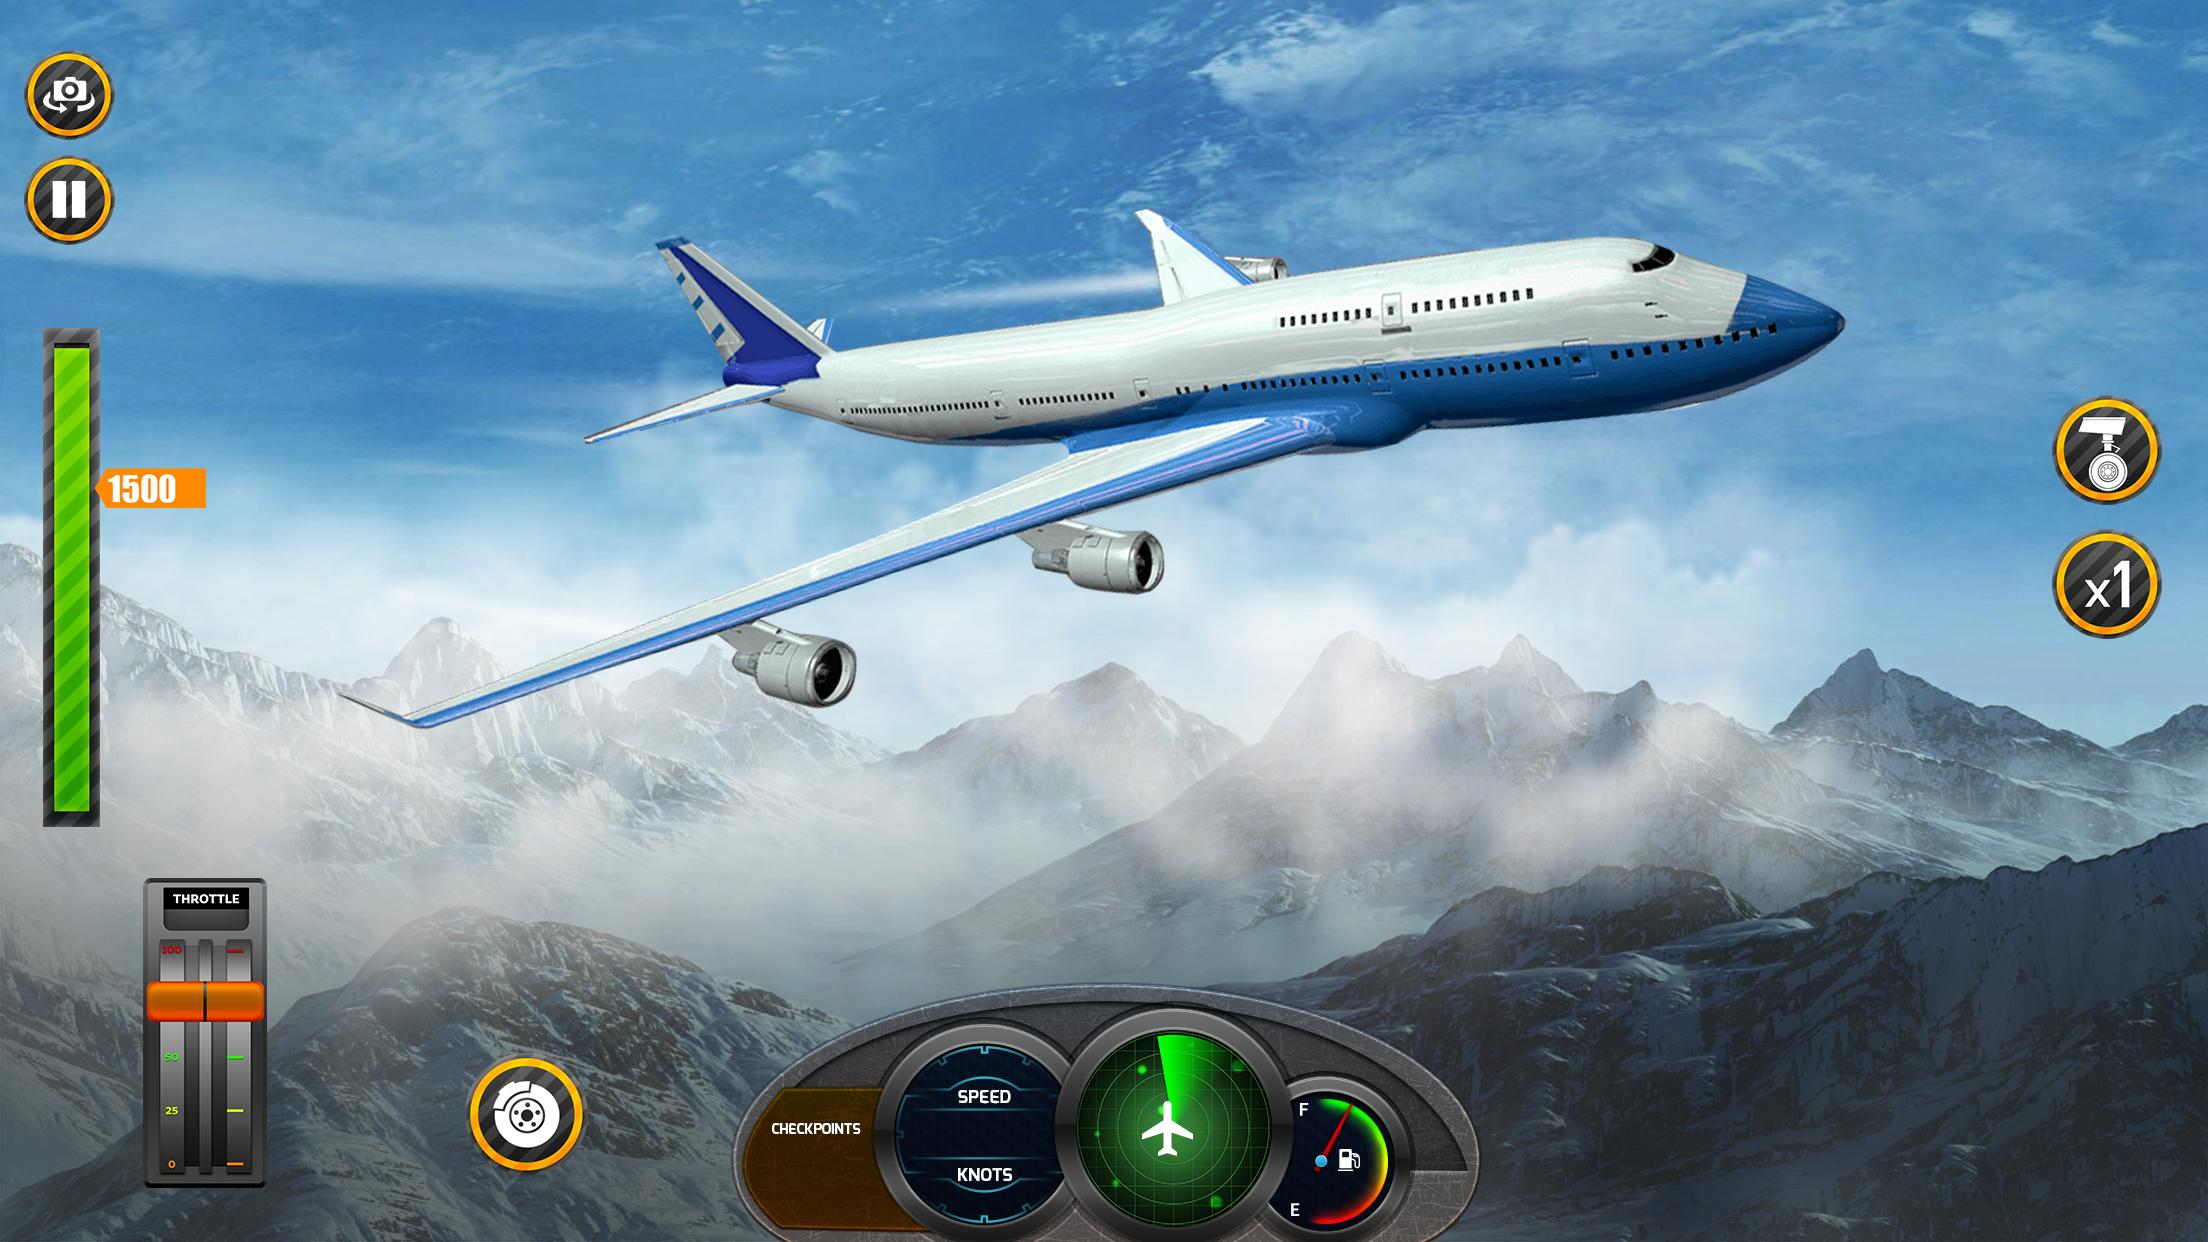 Airplane Real Flight Simulator 2020 Plane Games 5.4 Screenshot 16